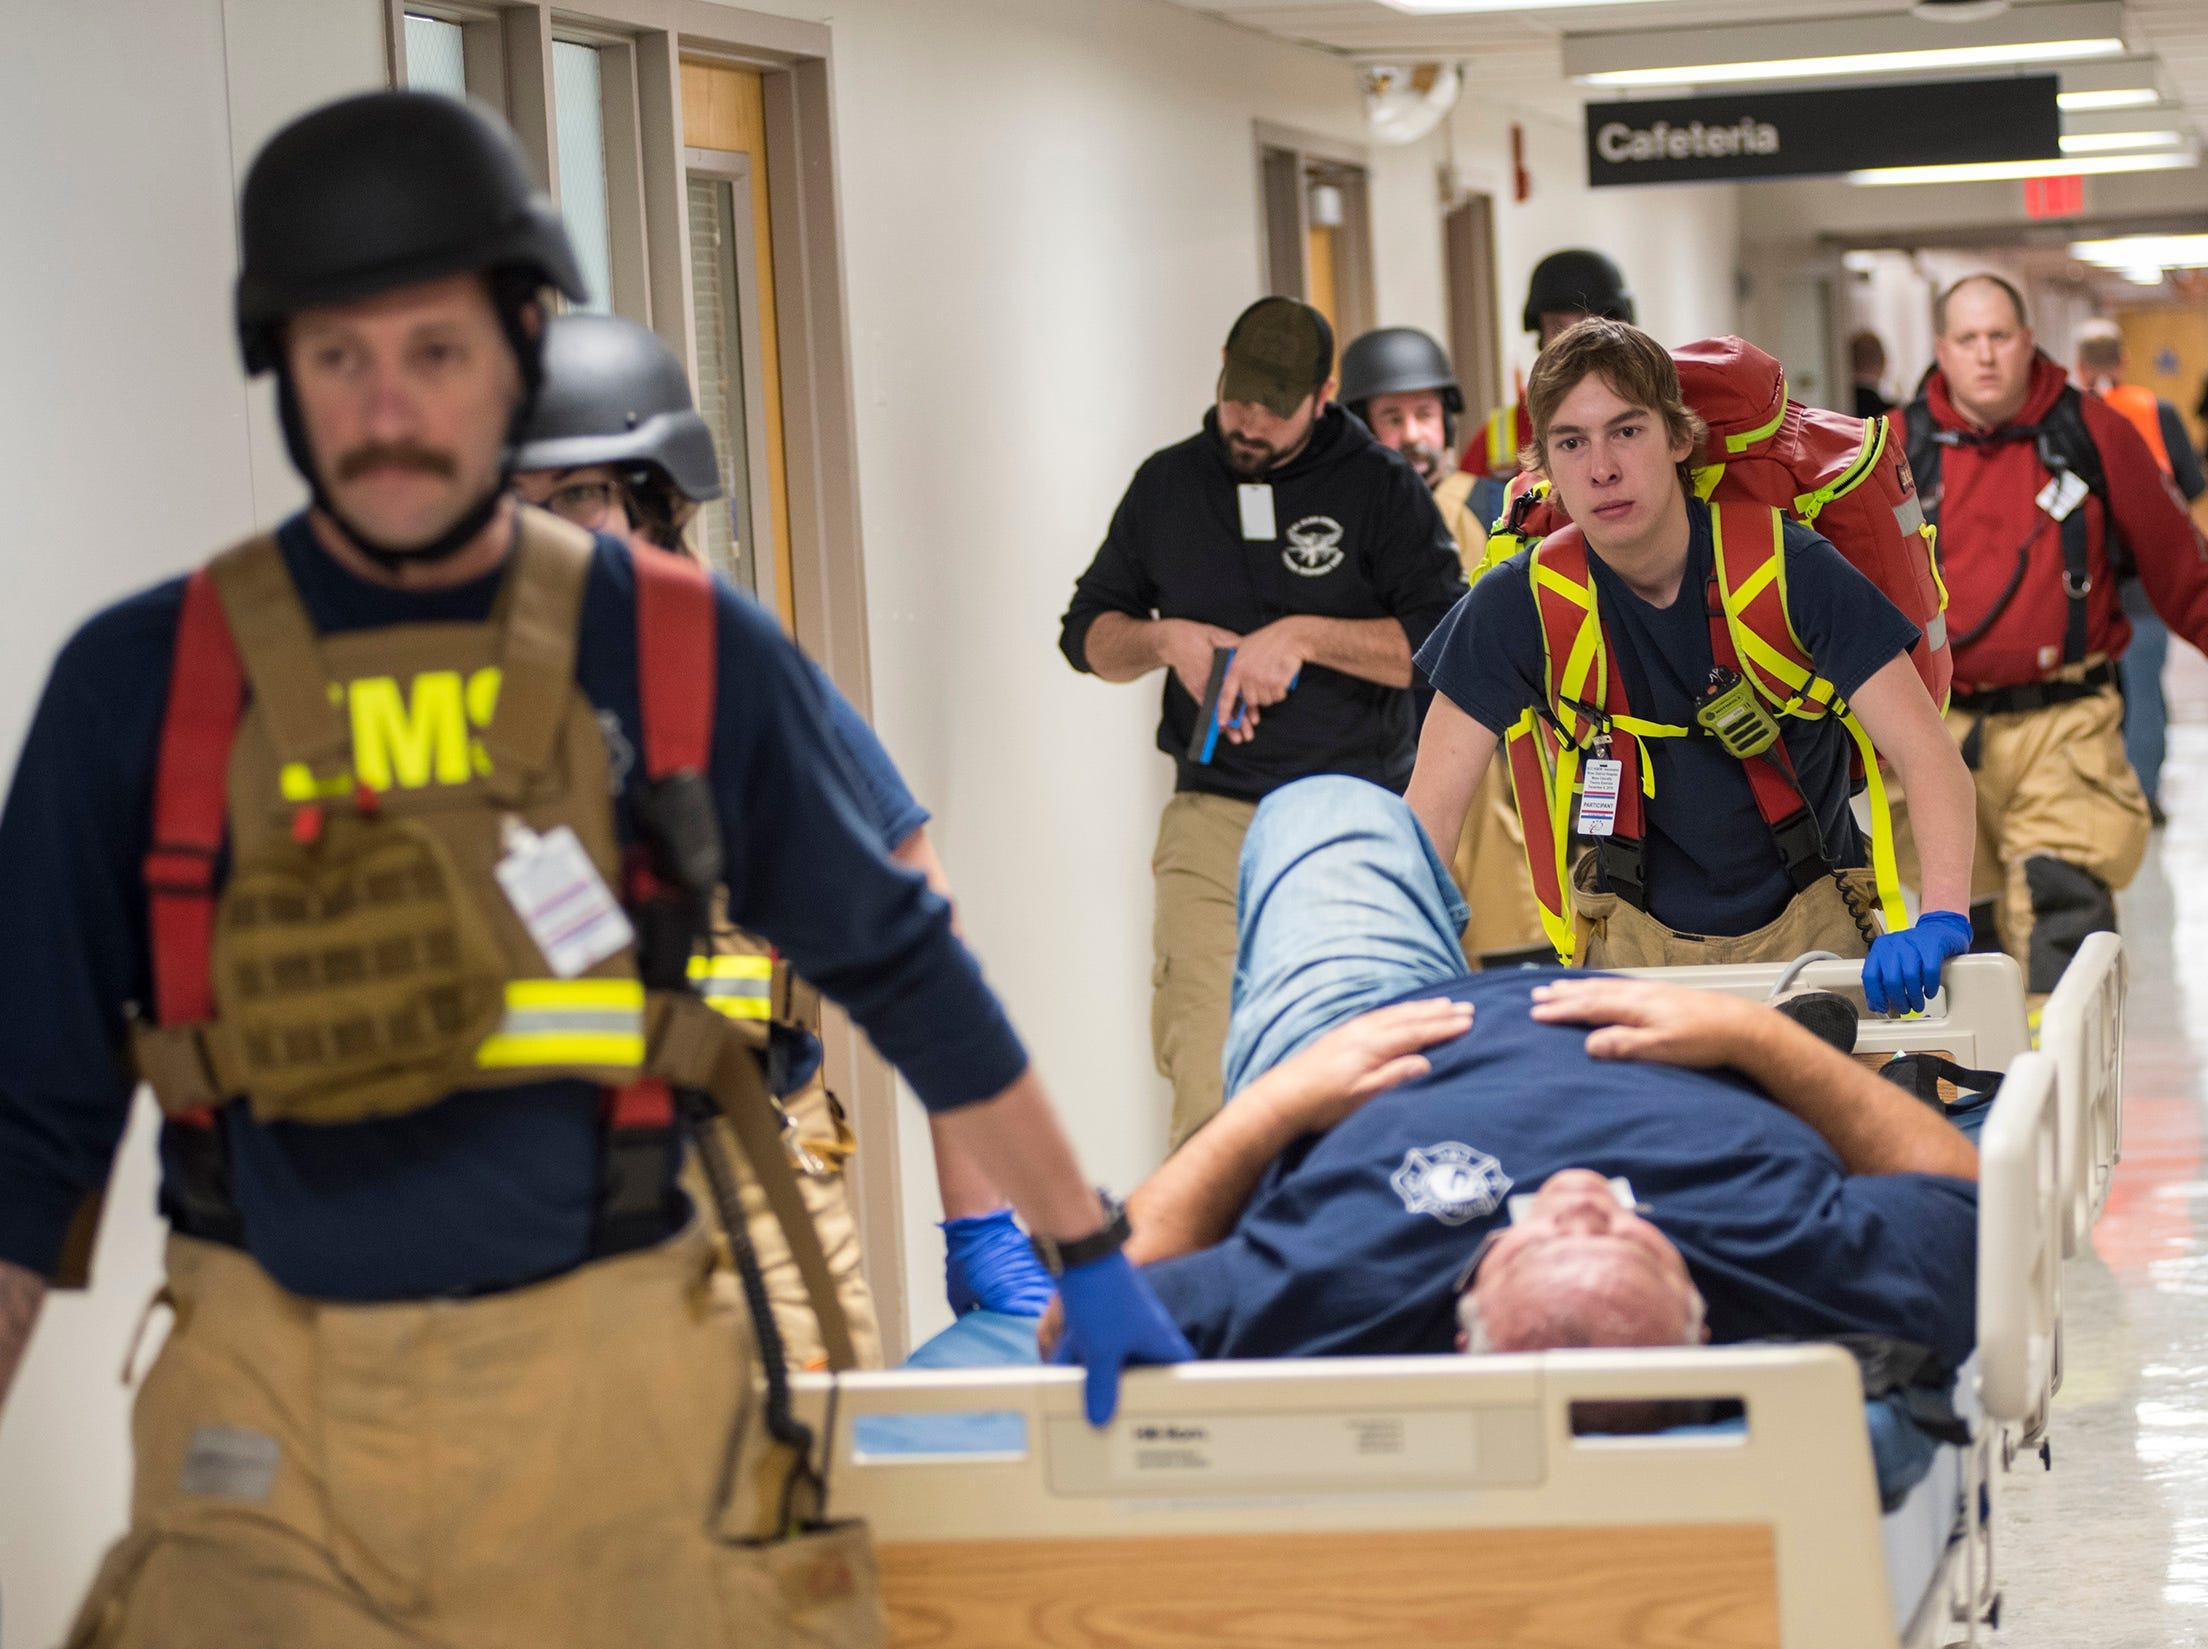 Responders work to move a victim during an active shooter training drill Thursday, Dec. 6, 2018 at Ascension River District Hospital in East China.